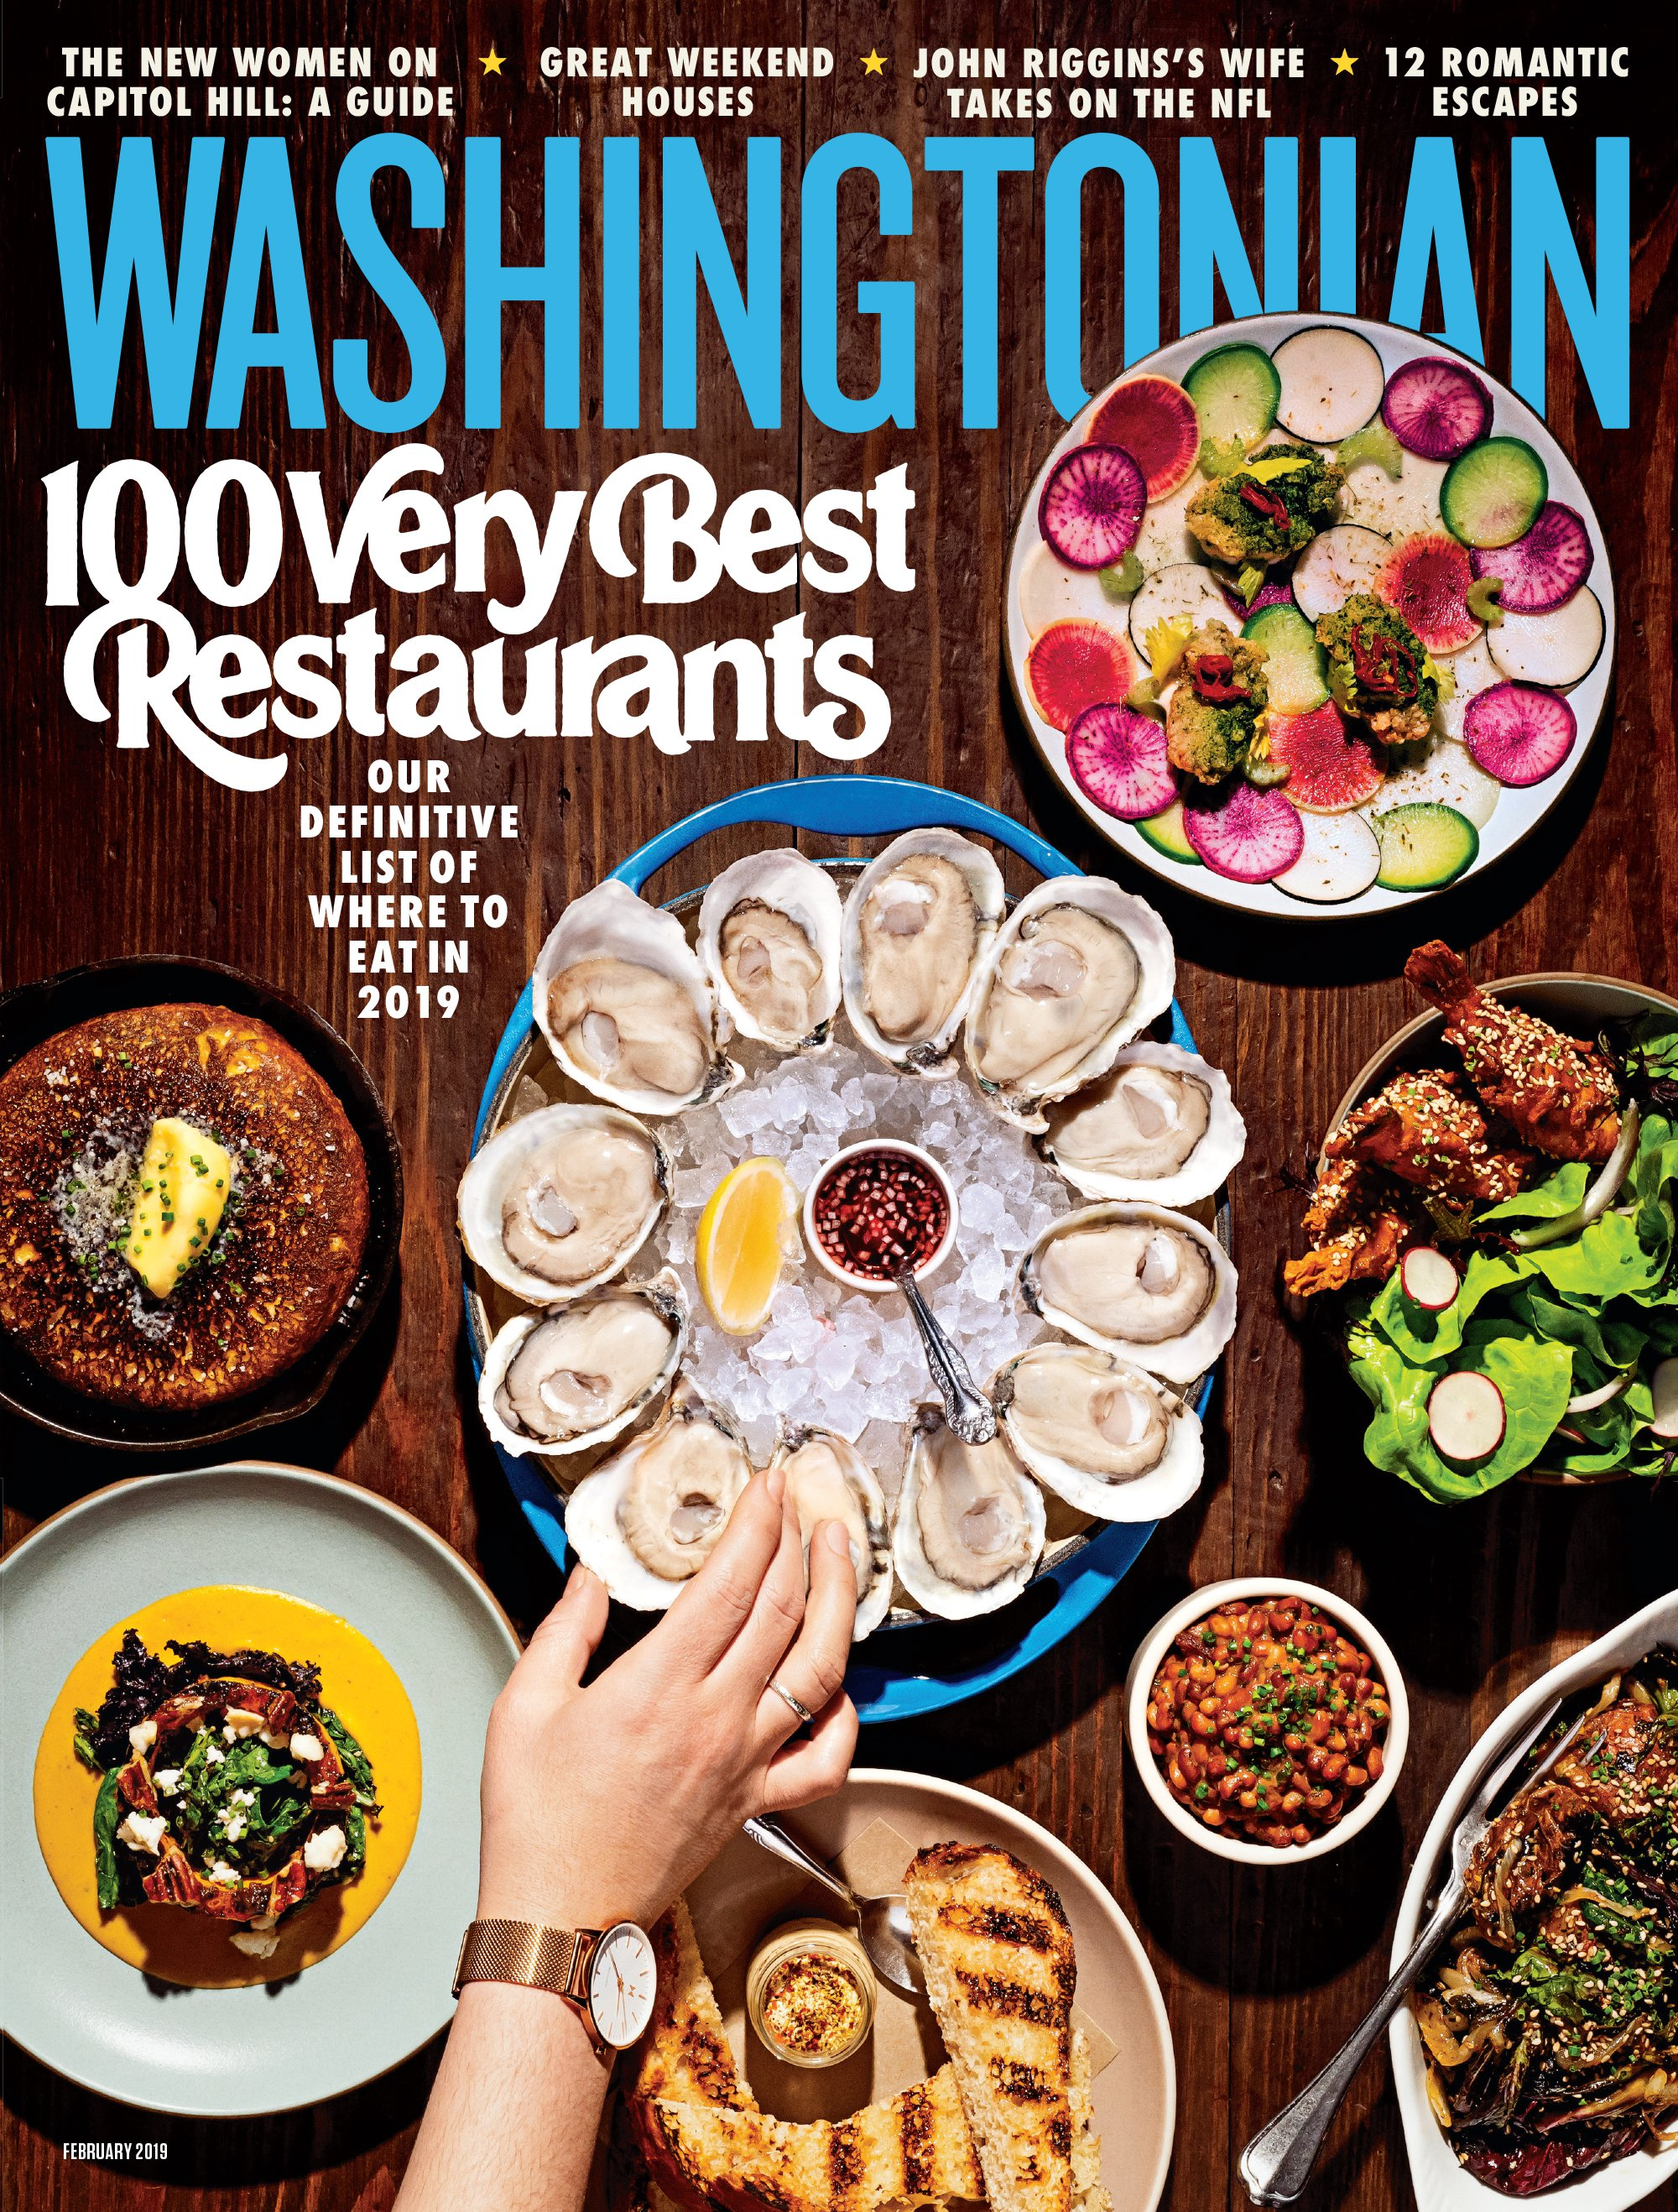 washingtonian-100-very-best-restaurants-in-wasington